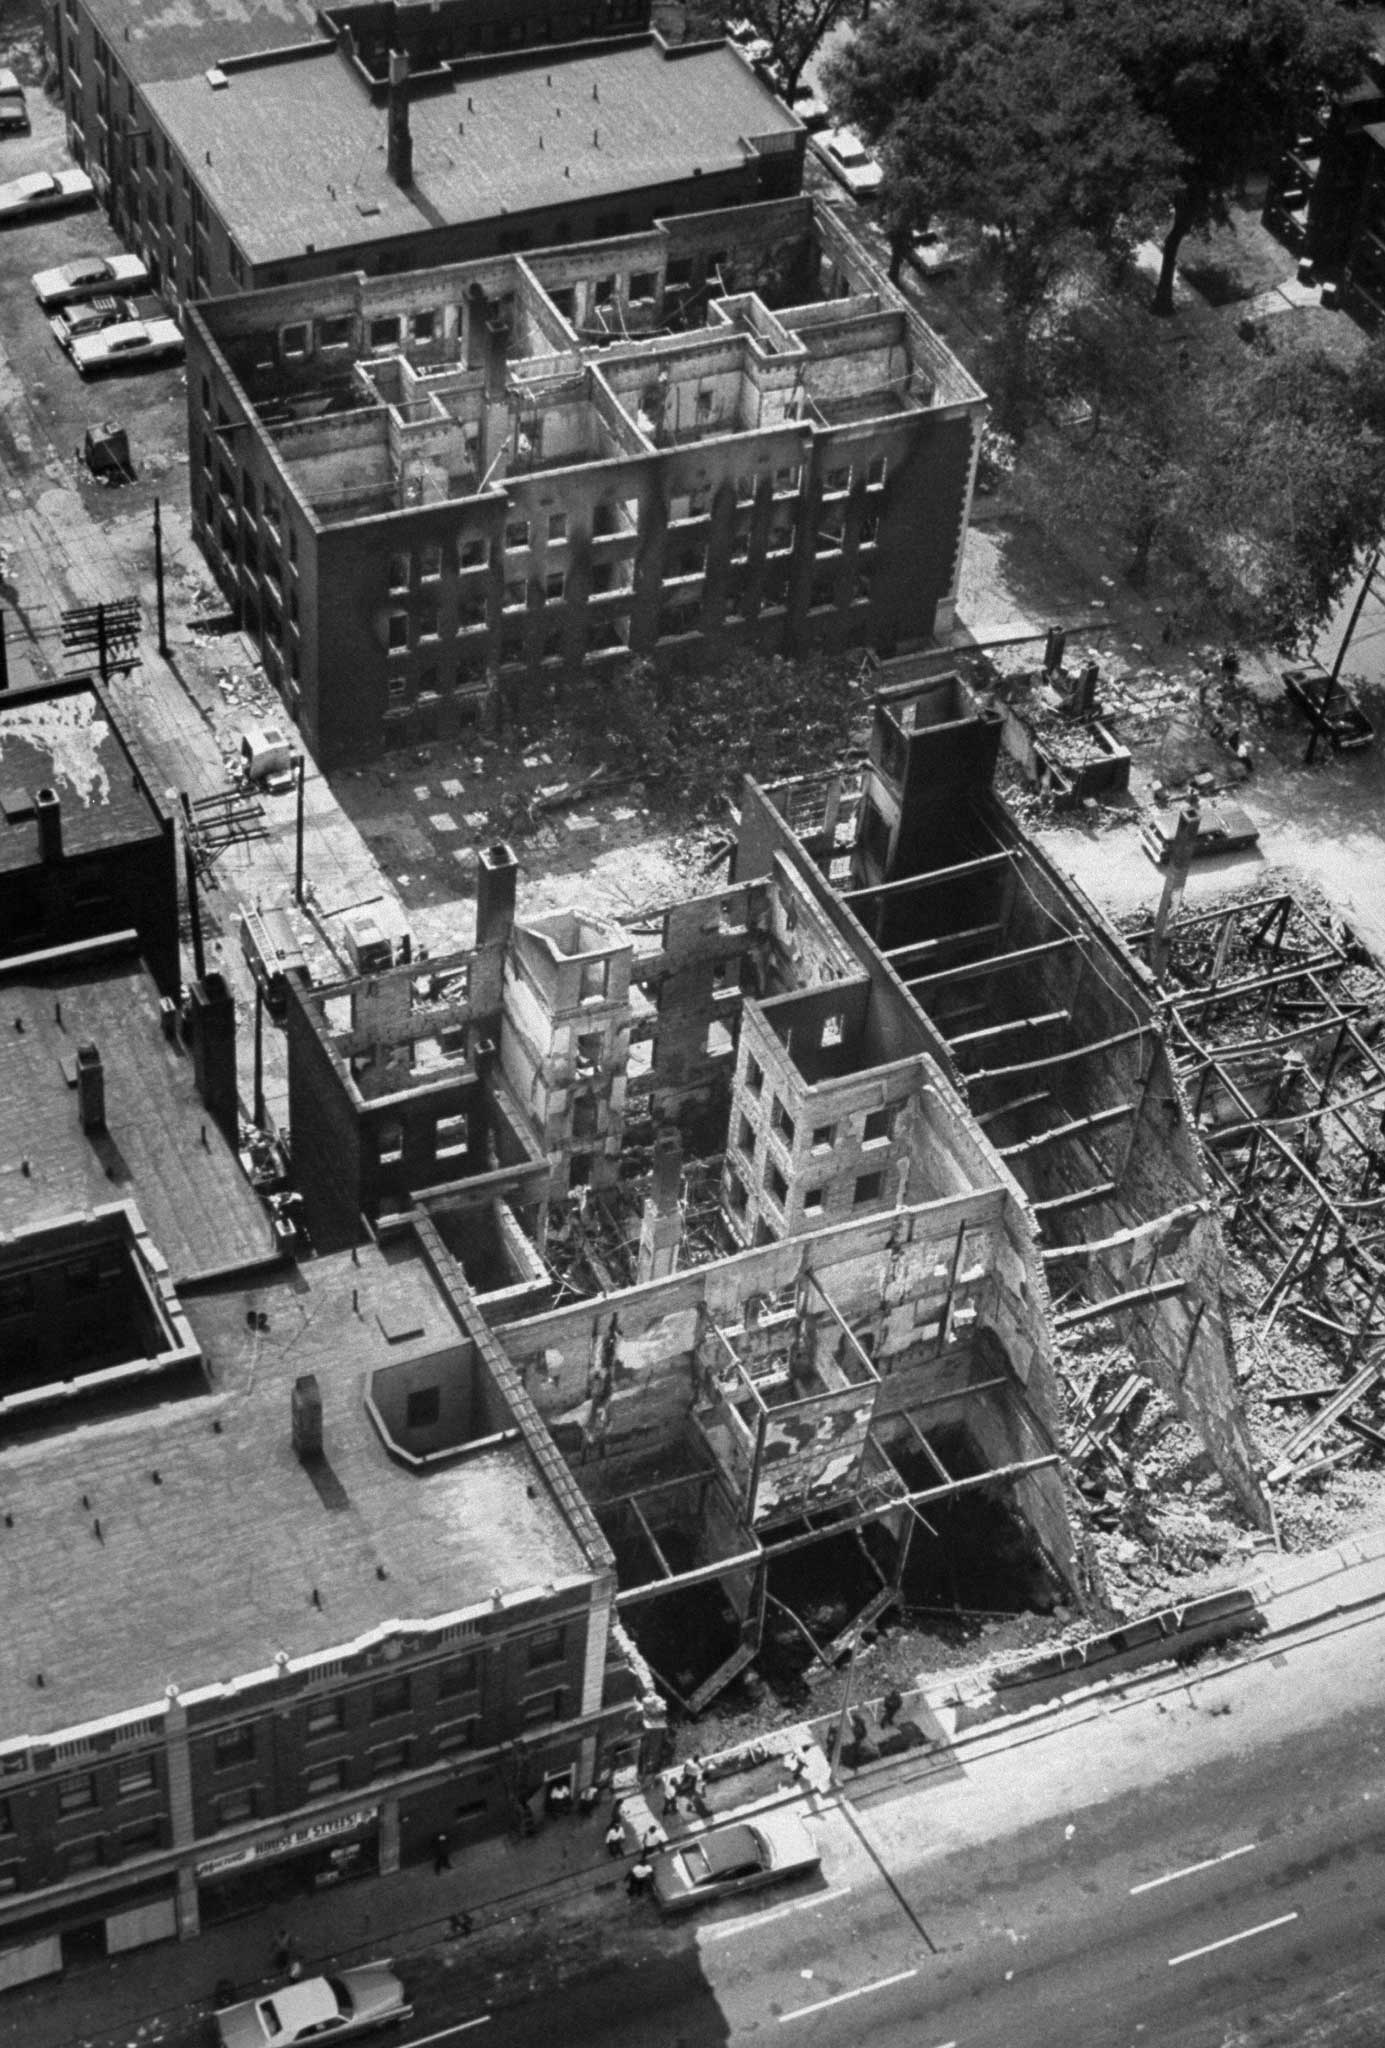 <b>Not published in LIFE.</b> Detroit, July 1967. Aftermath of riots.